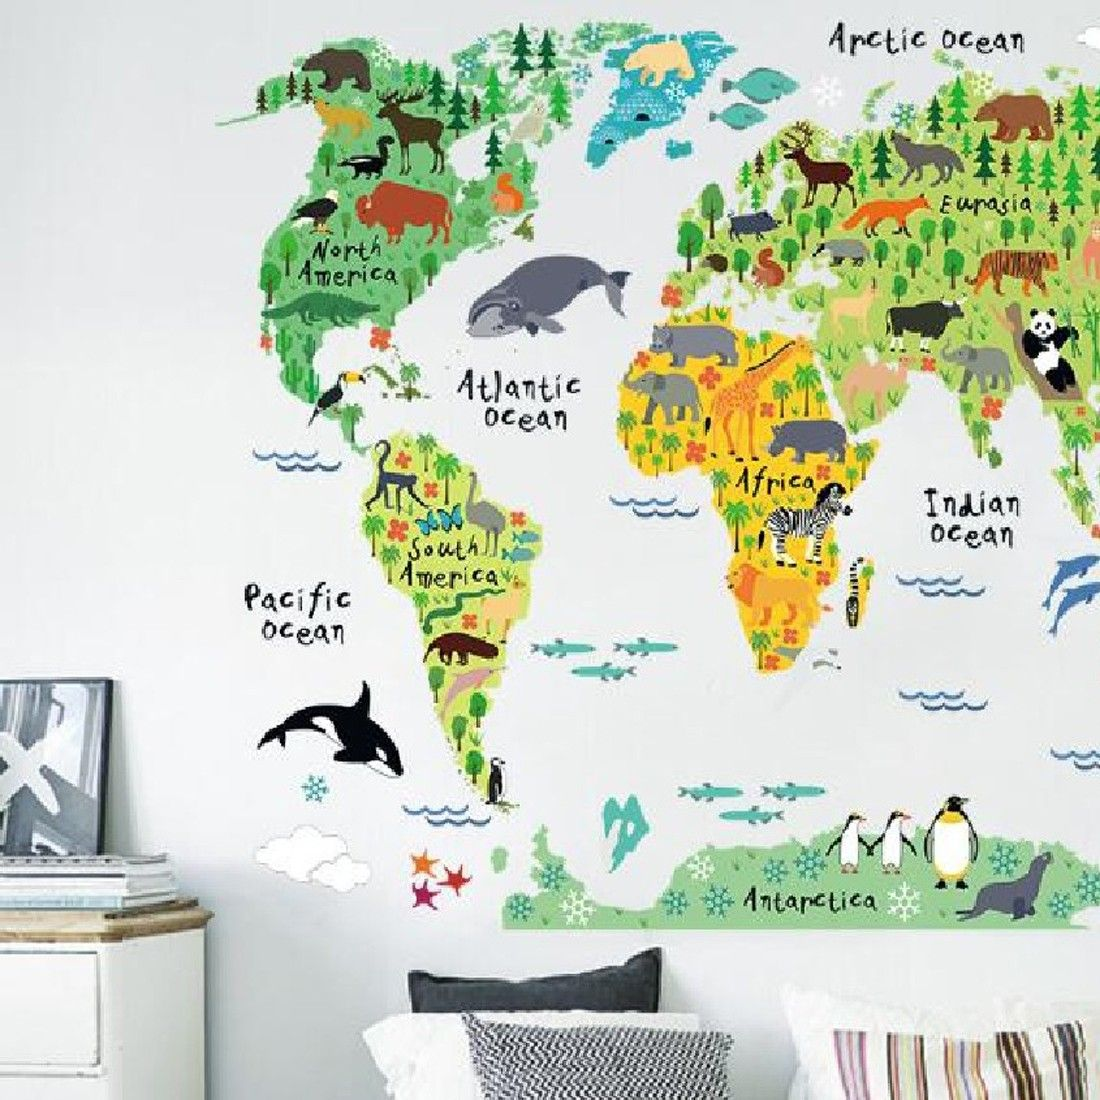 Cheap map wall sticker buy quality world map wall sticker winhappyhome animal distribution world map removable wall art stickers for kids room nursery decor teaching decals additional details at the pin image gumiabroncs Choice Image